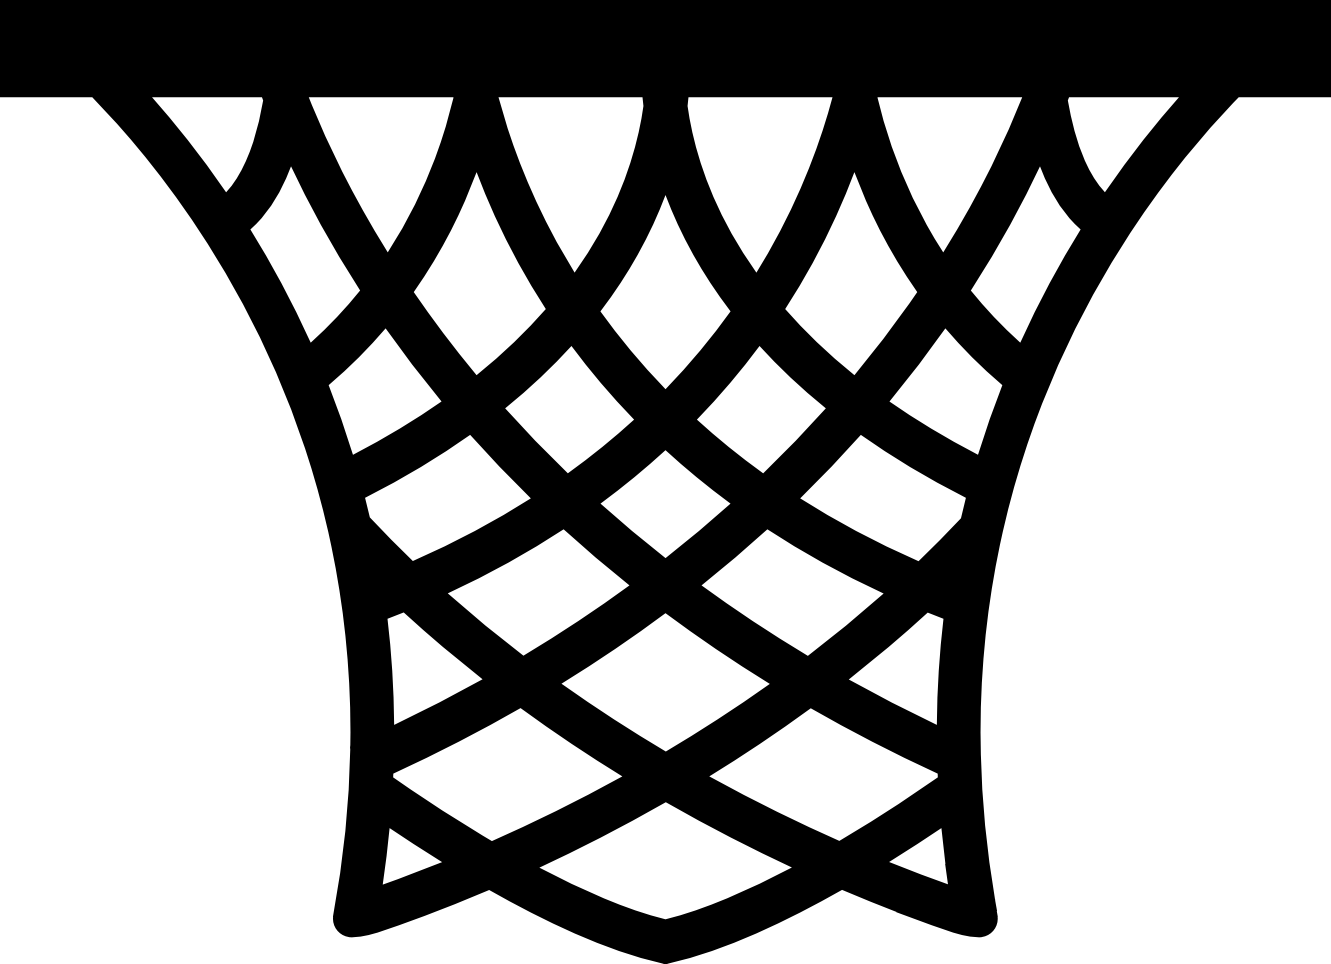 Swish vector line. Basketball net white background